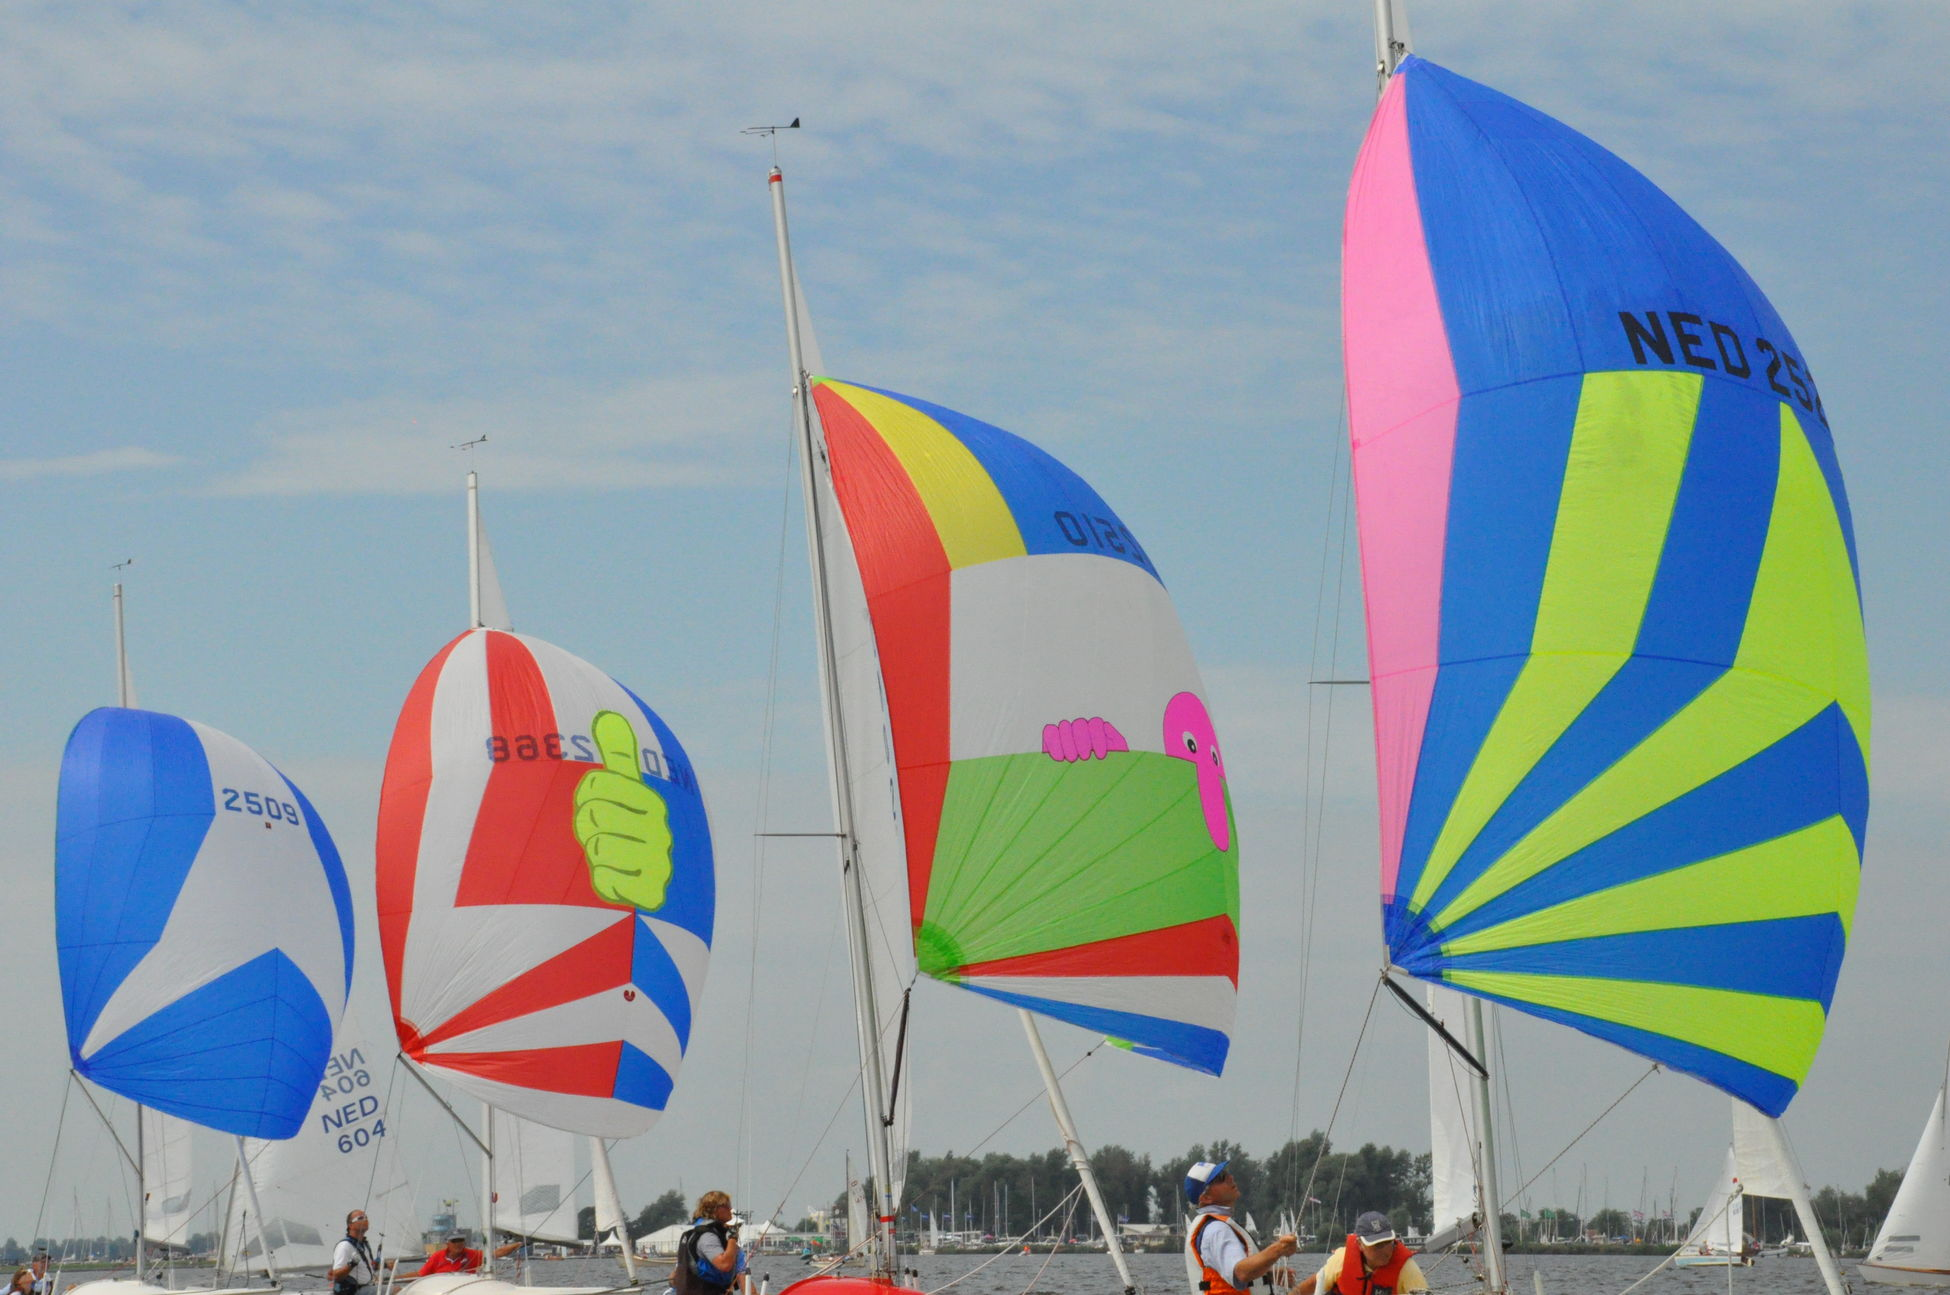 Spinnakers in line Leisure Activity Lifestyles Multi Colored Regatta Rope Of Pearls Sail Sailboat Sailing Spinnaker